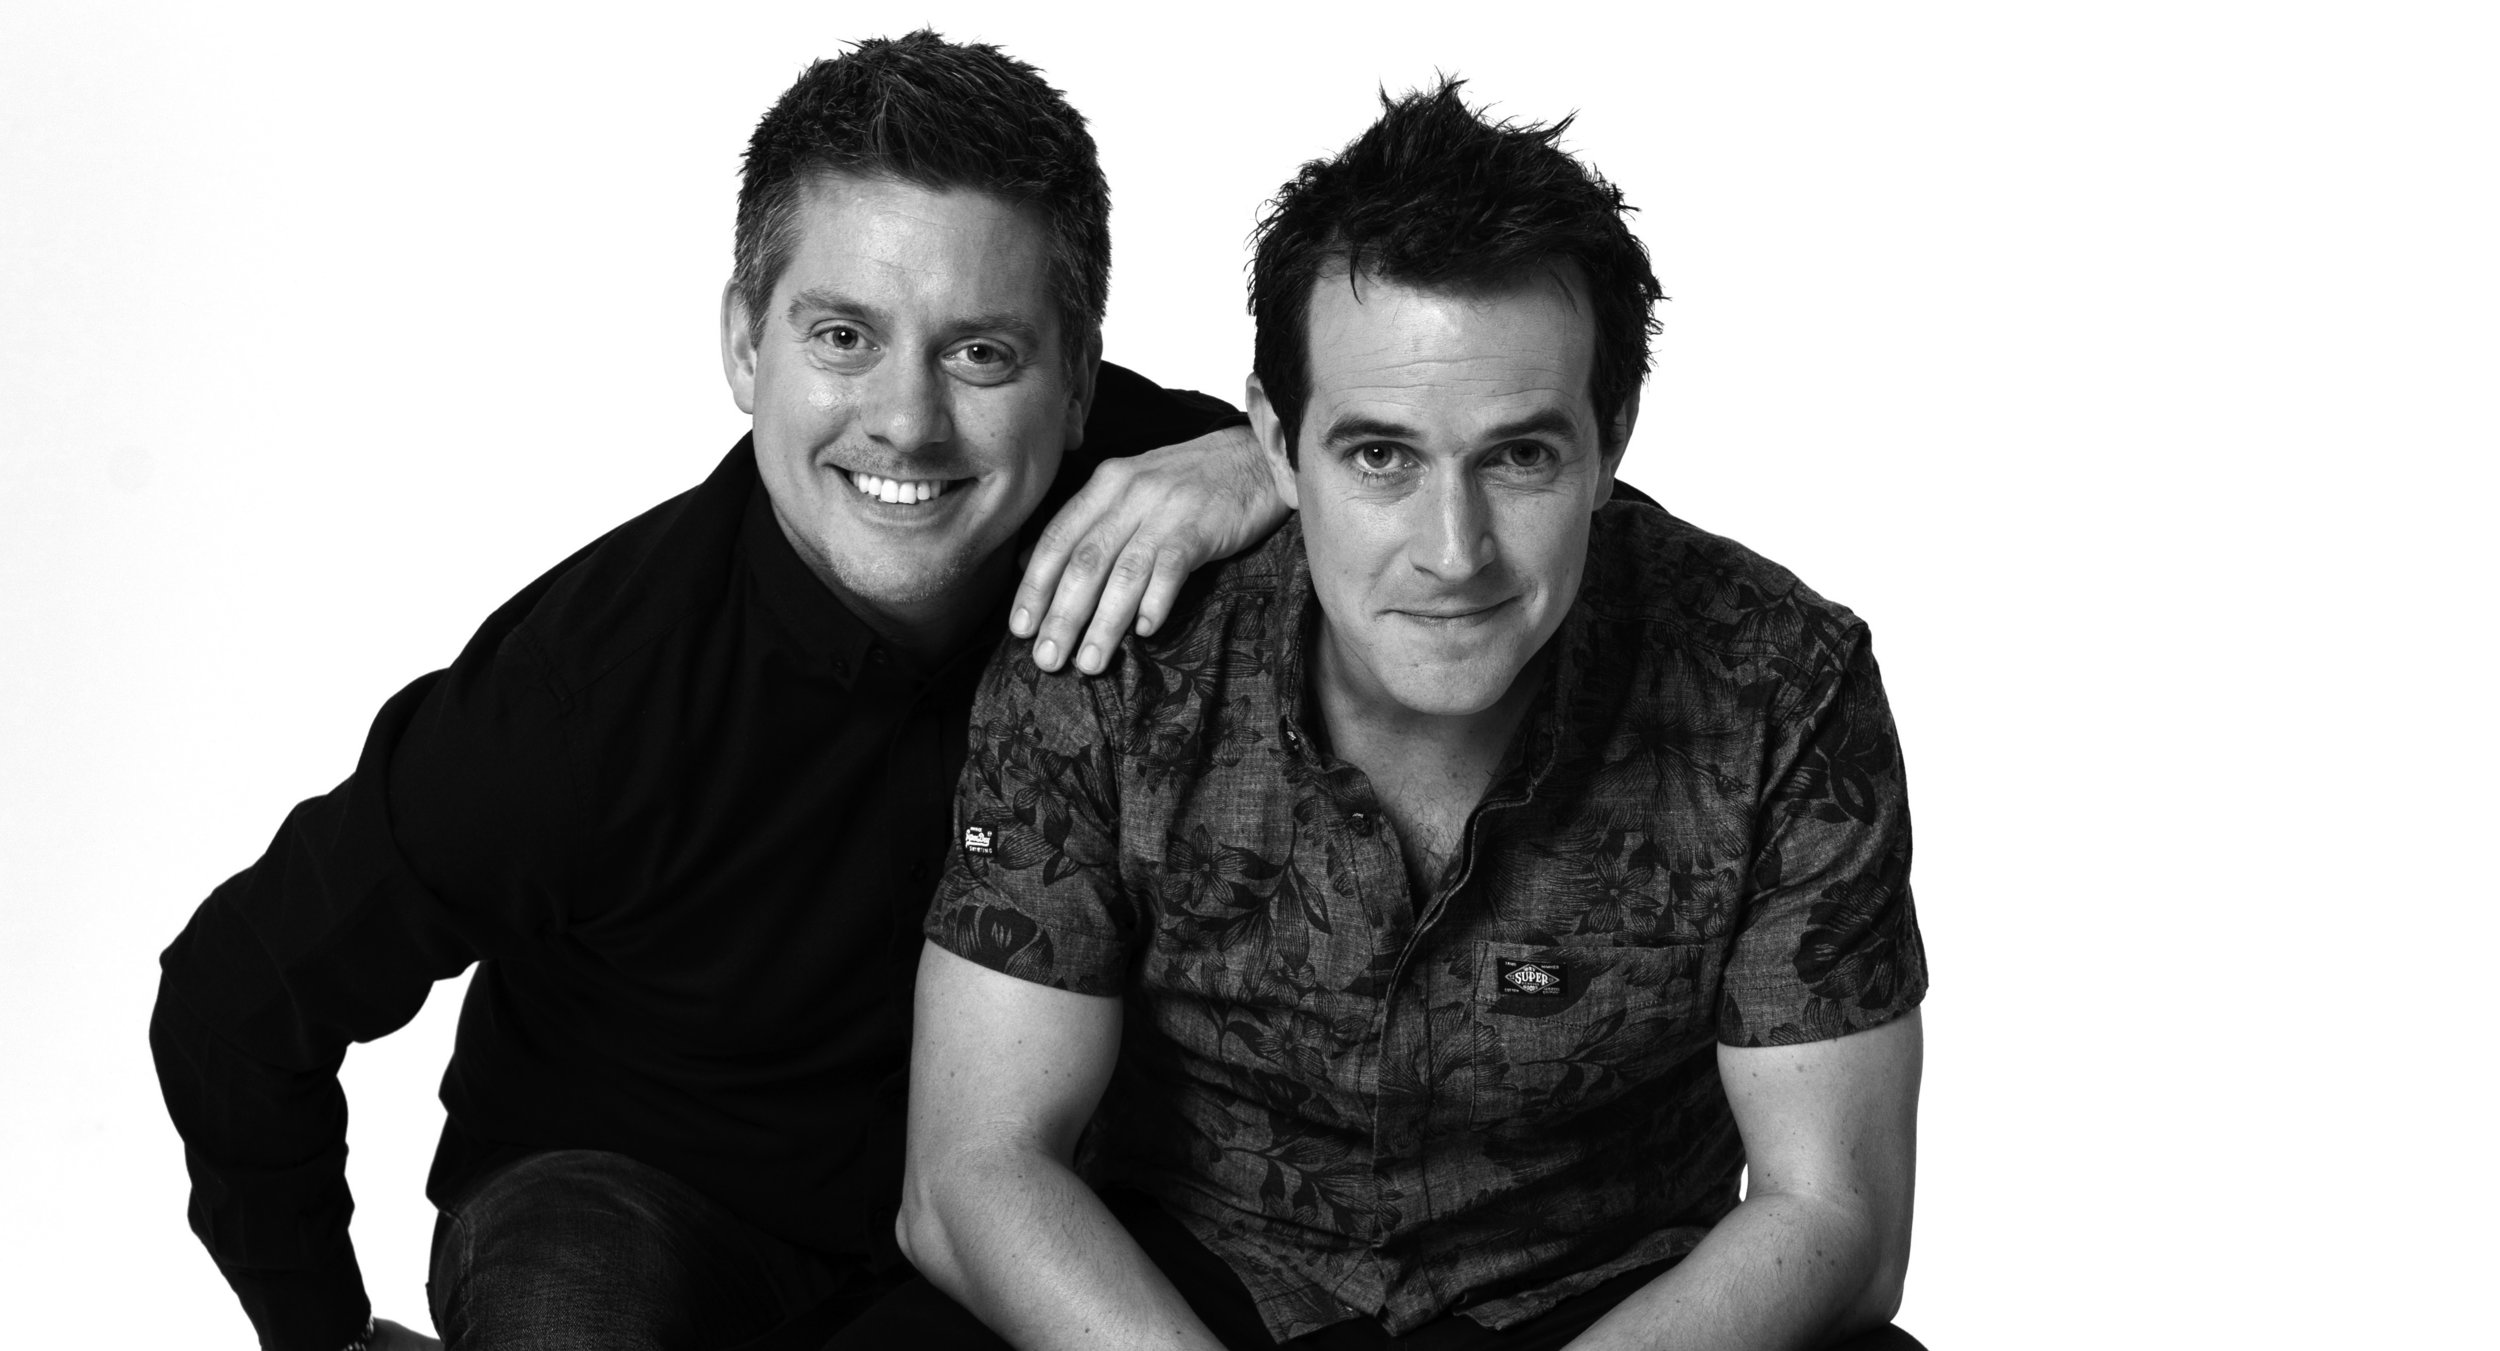 Dick and Dom - Saturday 8th June 2019Fresh off the back of their award winning Dick and Dom stage show, the boys are back in the ring… but this time, it's all about the music! It's time for… The Dick and Dom DJ Battle! Set on different sides of the stage behind their own set of decks, the boys battle it out to see who can whip up the crowd in to the greatest state of EUPHORIA!!! Will it be Dick or will it be Dom?